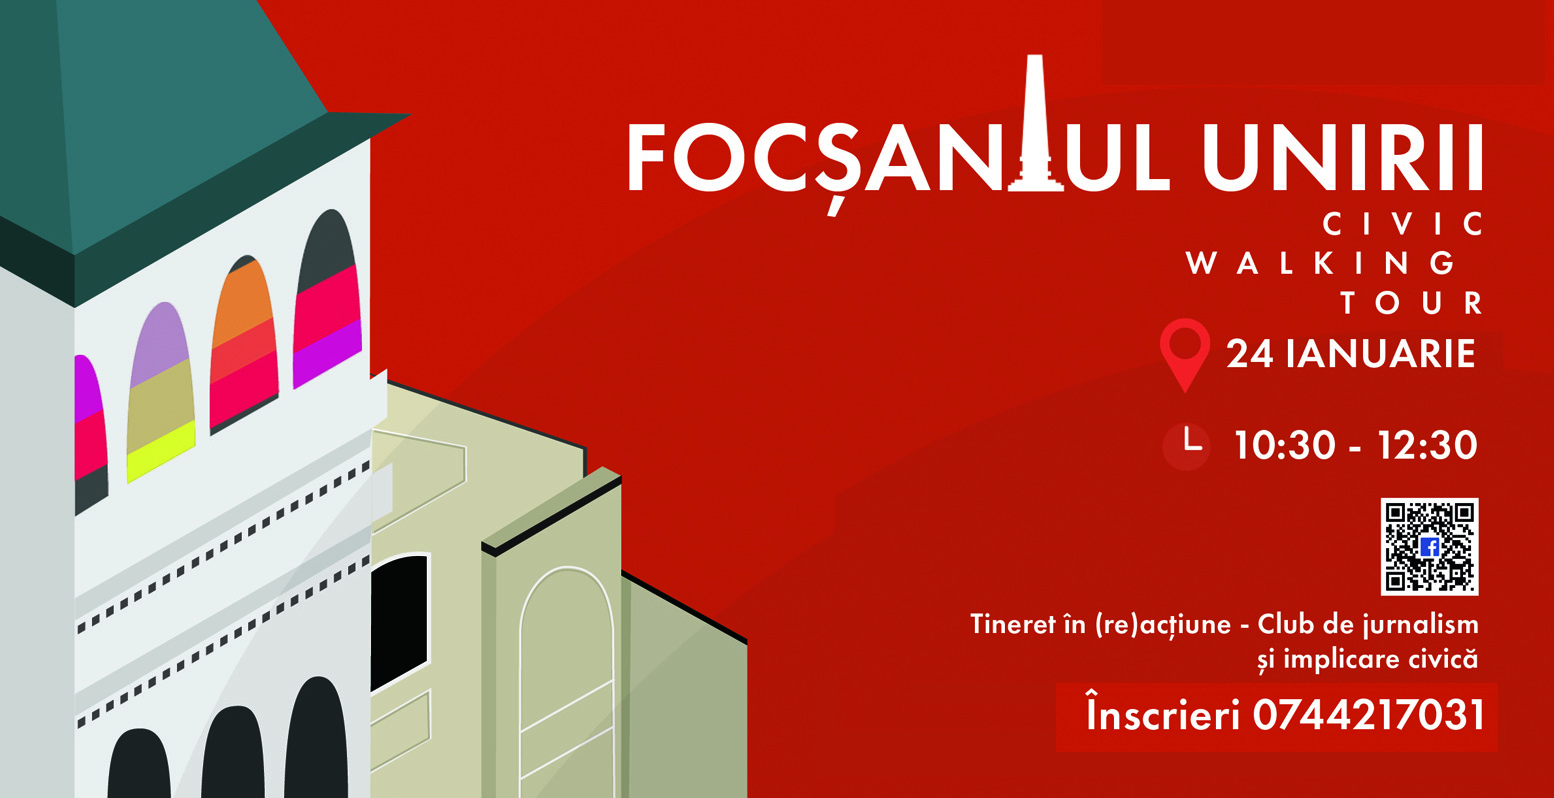 Focșaniul Unirii – civic walking tour